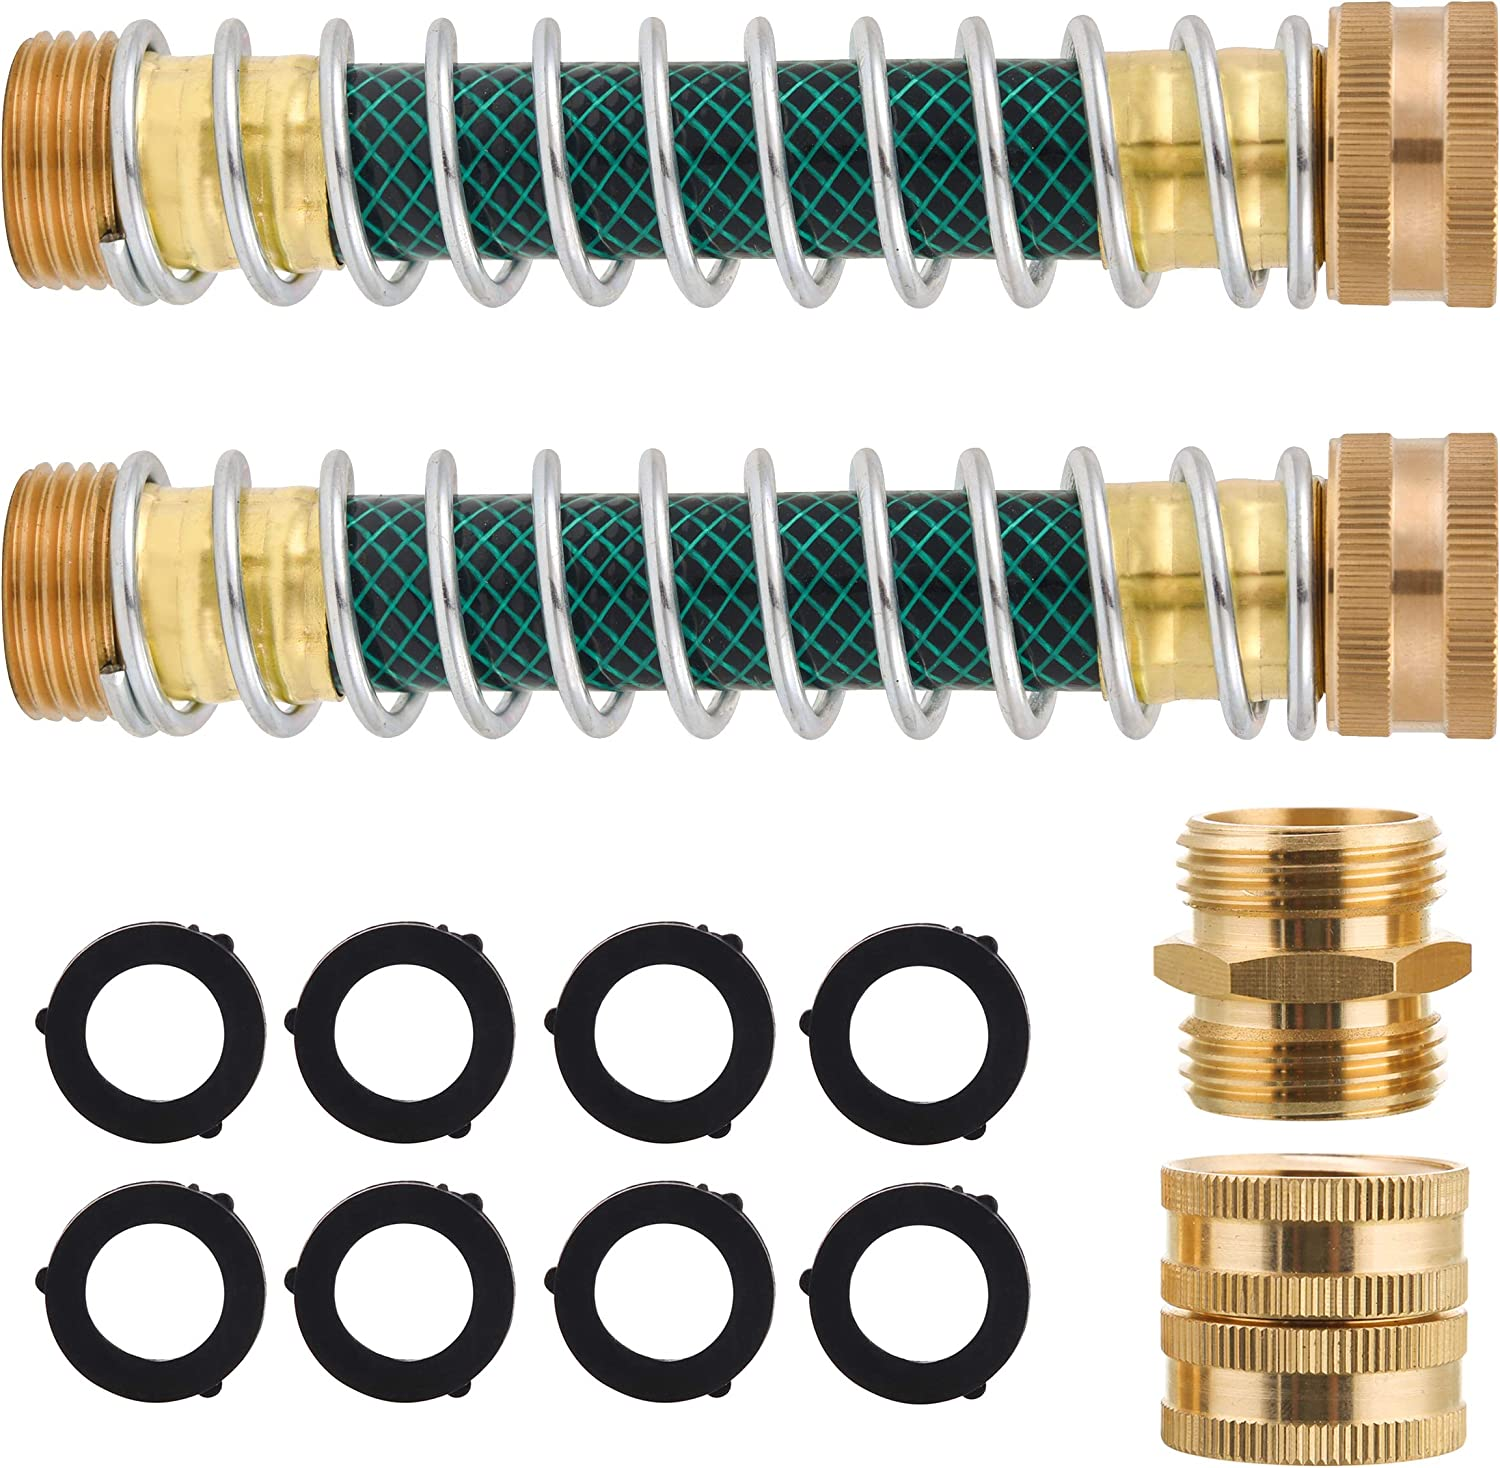 Tool Daily Garden Hose Protector, Extension Adapter with Coiled Spring, Faucet Kink Free, Solid Brass